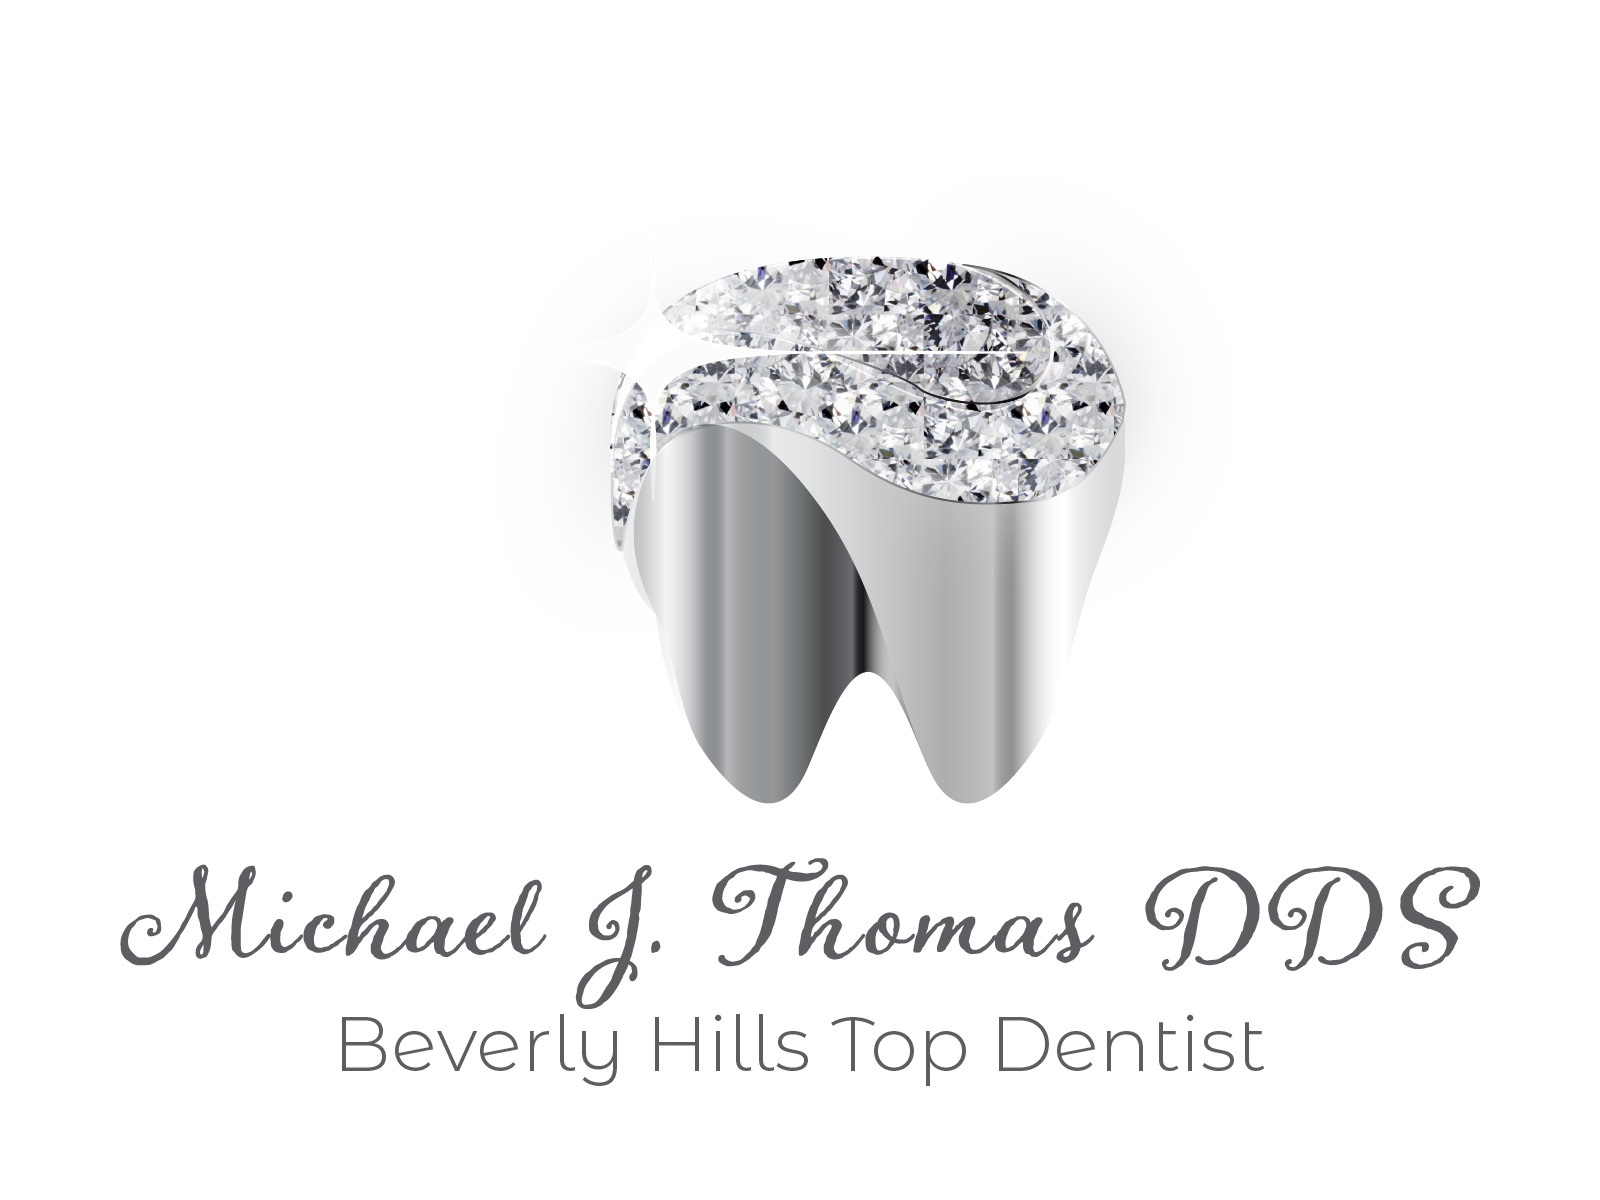 Dr. Michael J Thomas, DDS - Beverly Hills Top Dentist